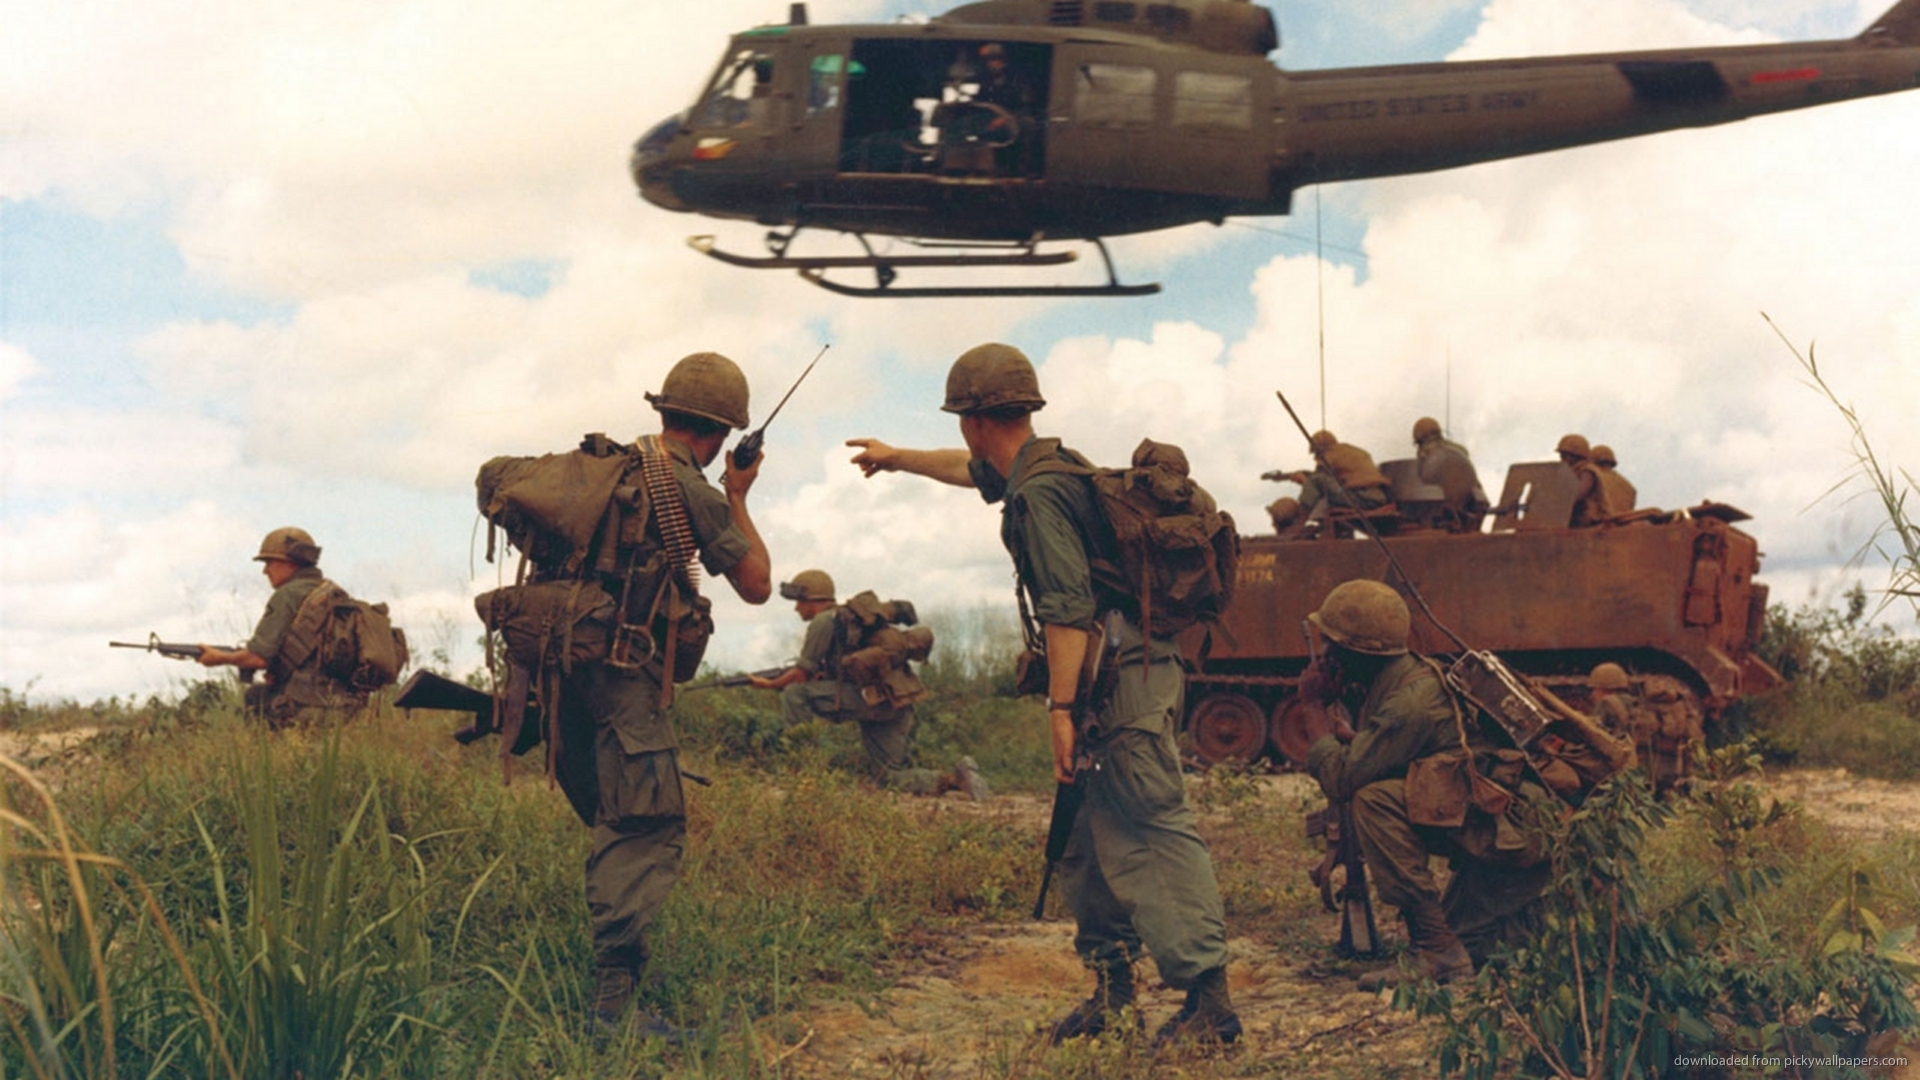 australian conscription in vietnam war The essay on australian conscription in vietnam war all sections of the community there were many reasons for australia's involvement in the vietnam war, including the allegiance commitments of south-east asia.